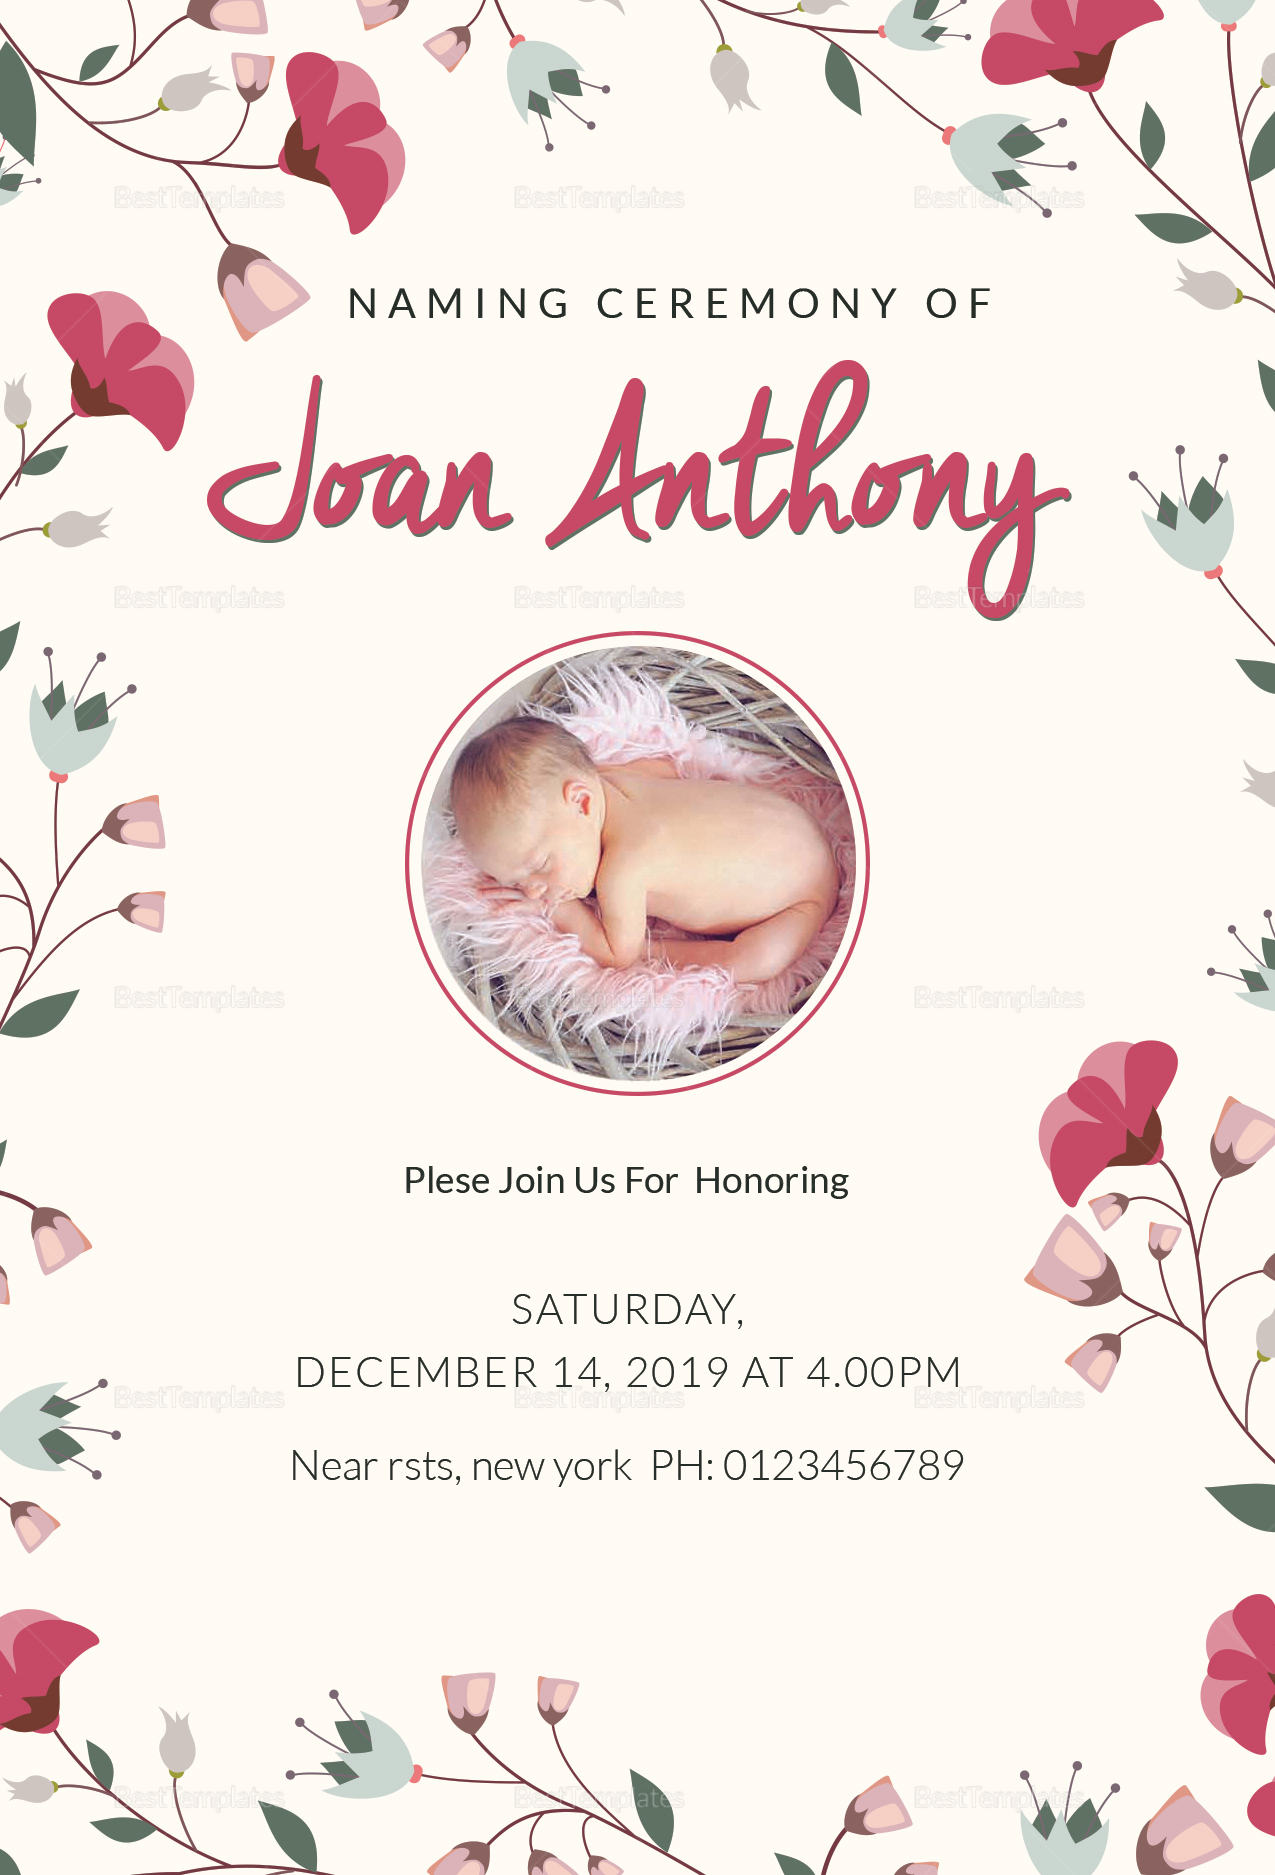 Happiest Naming Ceremony Invitation Template; Happiest Naming Ceremony  Invitation Template